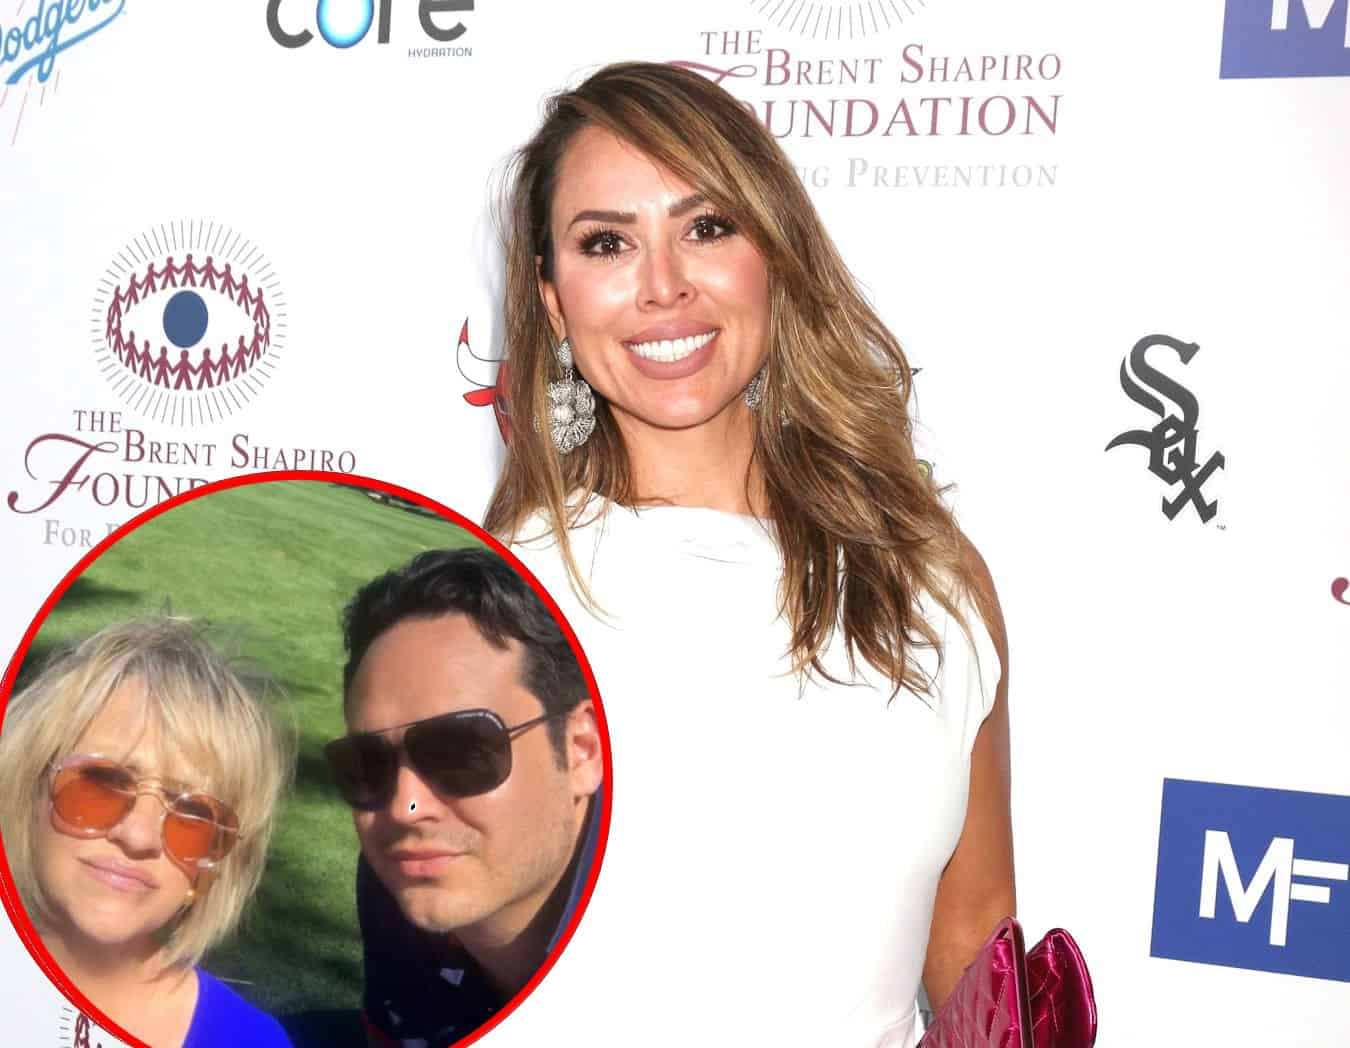 VIDEO: RHOC Star Kelly Dodd's Mom Discharged From Hospital After COVID-19 Landed Her in ICU and Celebrates by Going Out to Eat for Thanksgiving, See the Footage